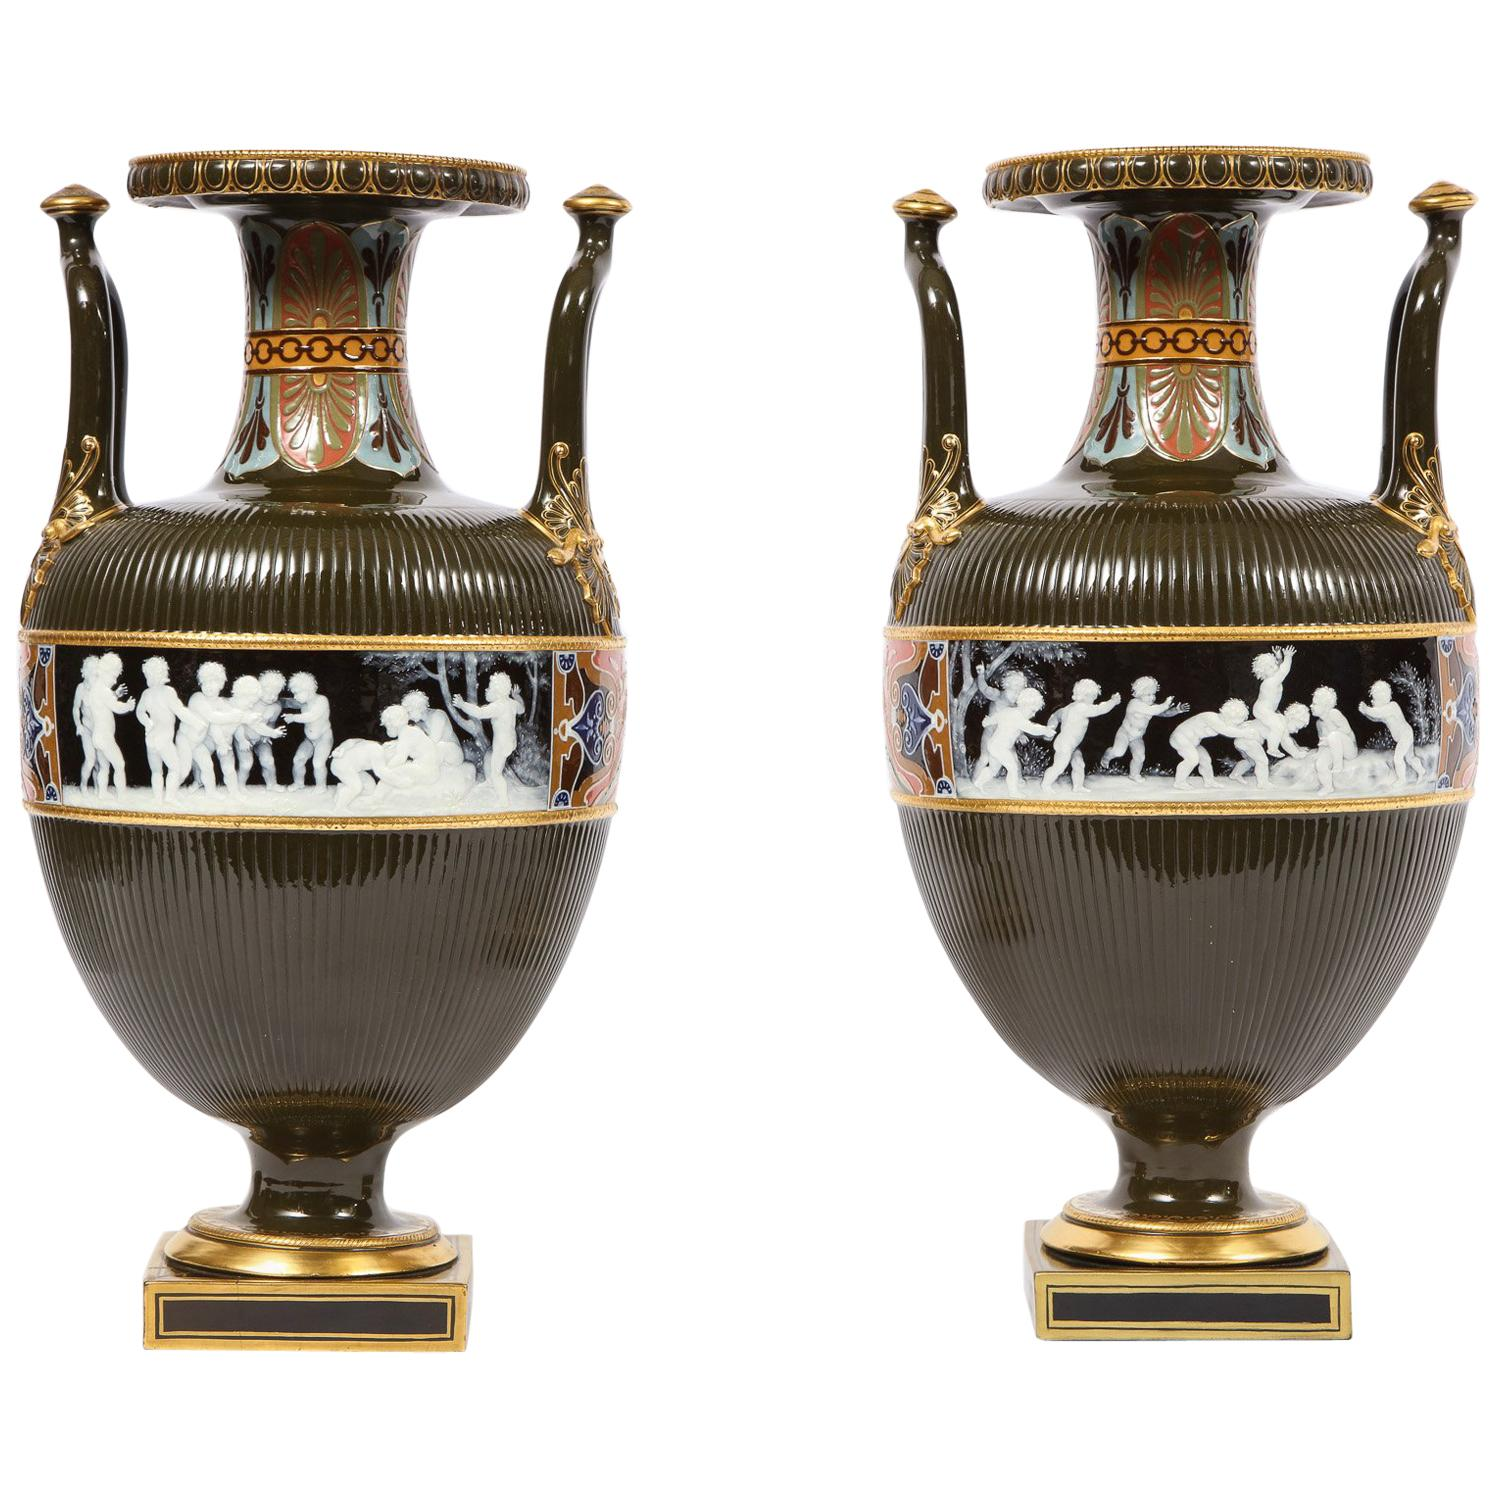 Pair of Mintons Pate Sur Pate Vases with Multi-Panel Neoclassical Subjects